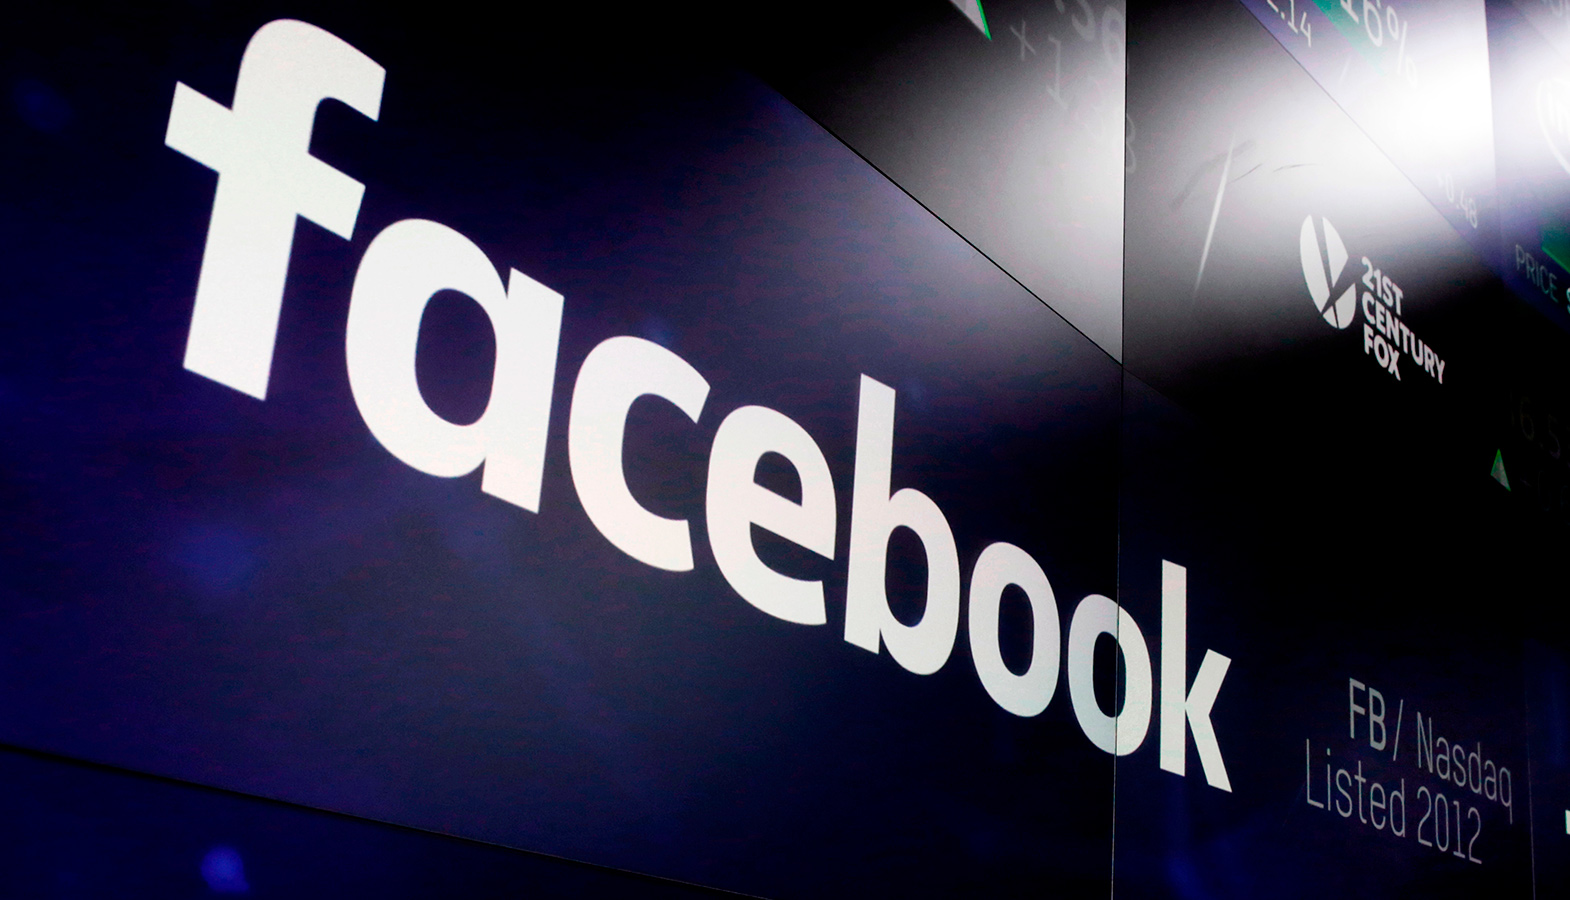 Facebook Will Provide Users With Information About Climate Change